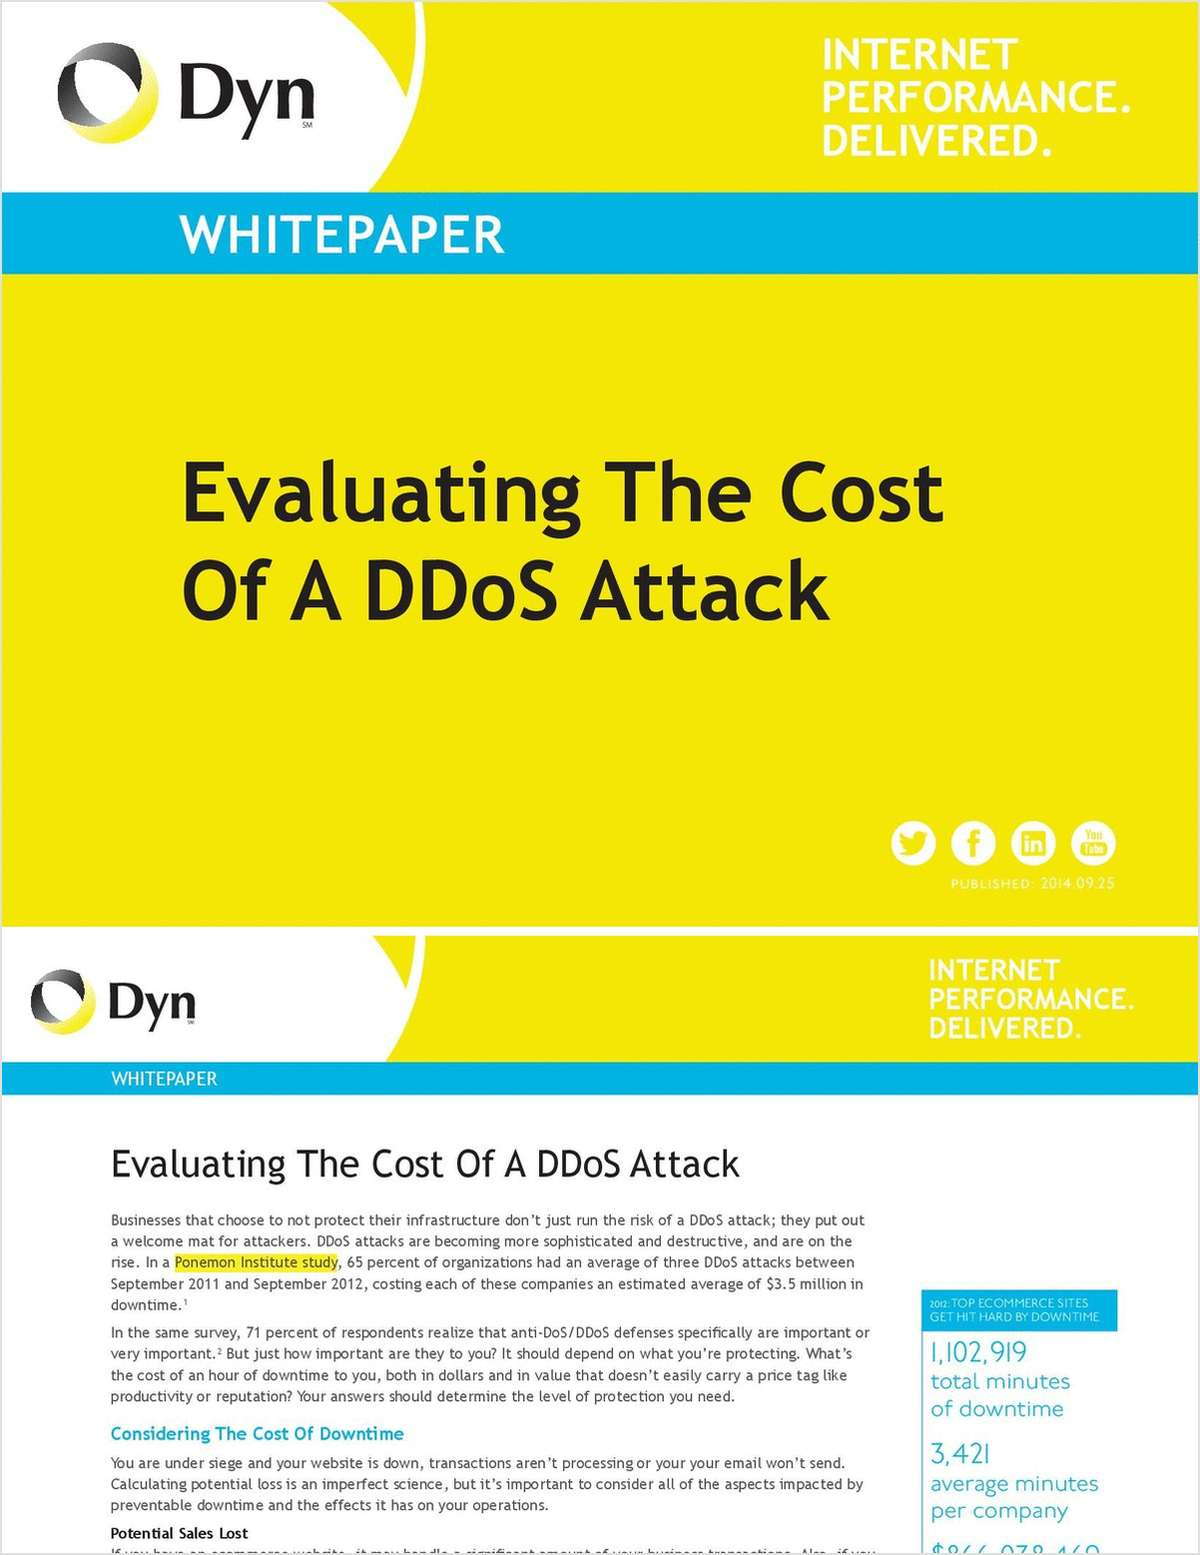 Evaluating The Cost of A DDoS Attack